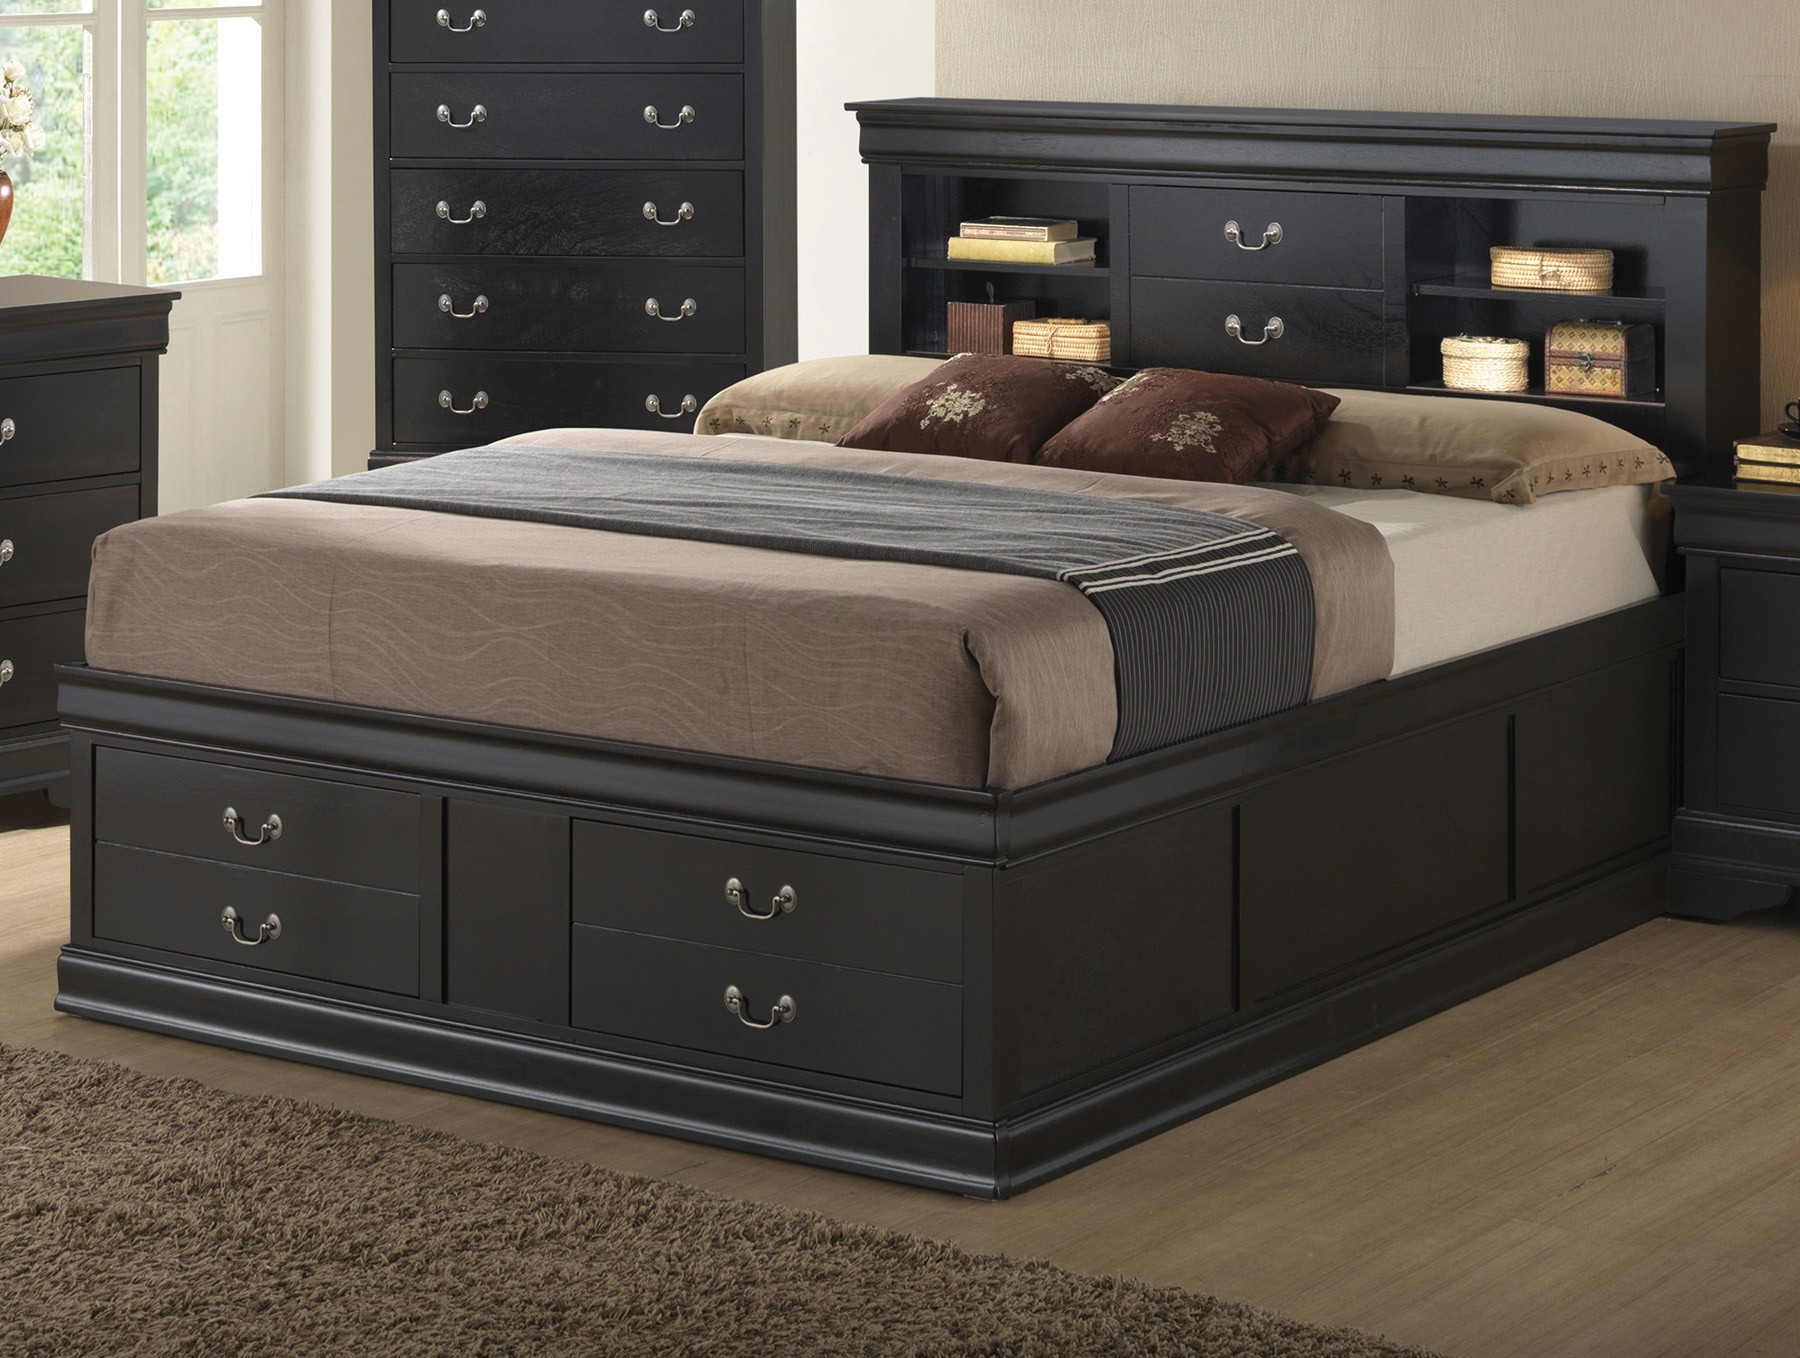 Image of: Bed With Headboard Storage Black